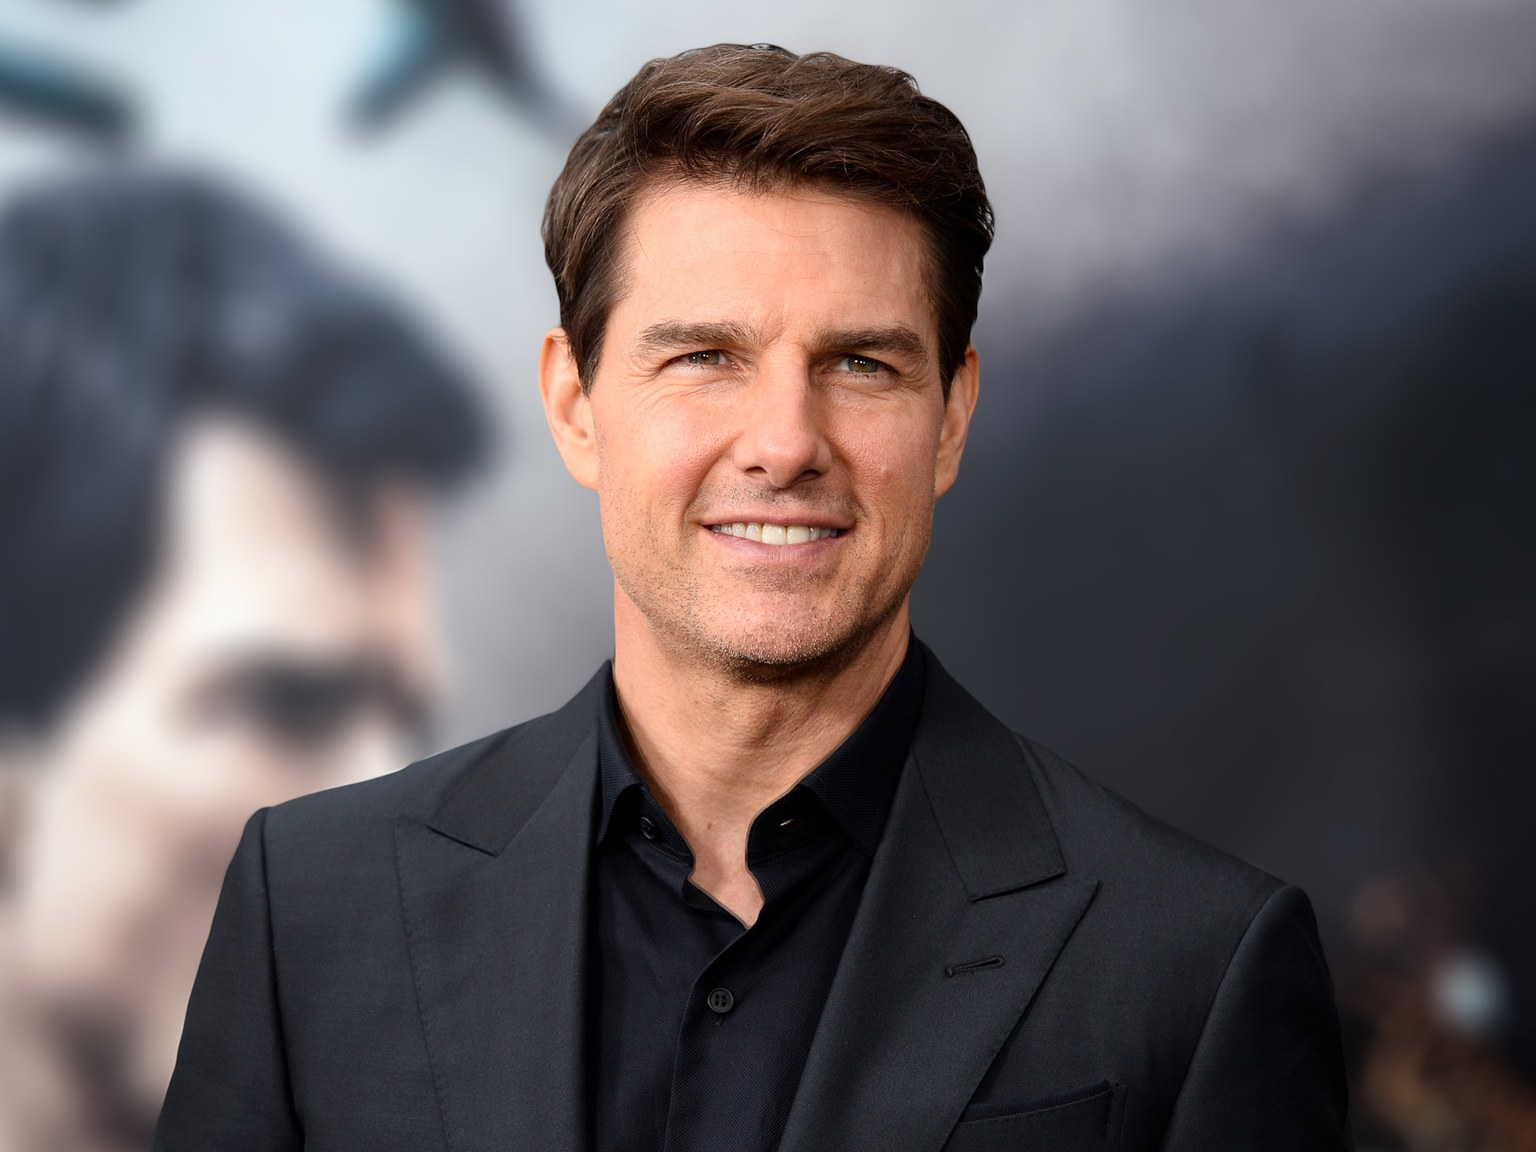 tom-cruise-is-hesitant-to-find-love-again-source-says-heres-why